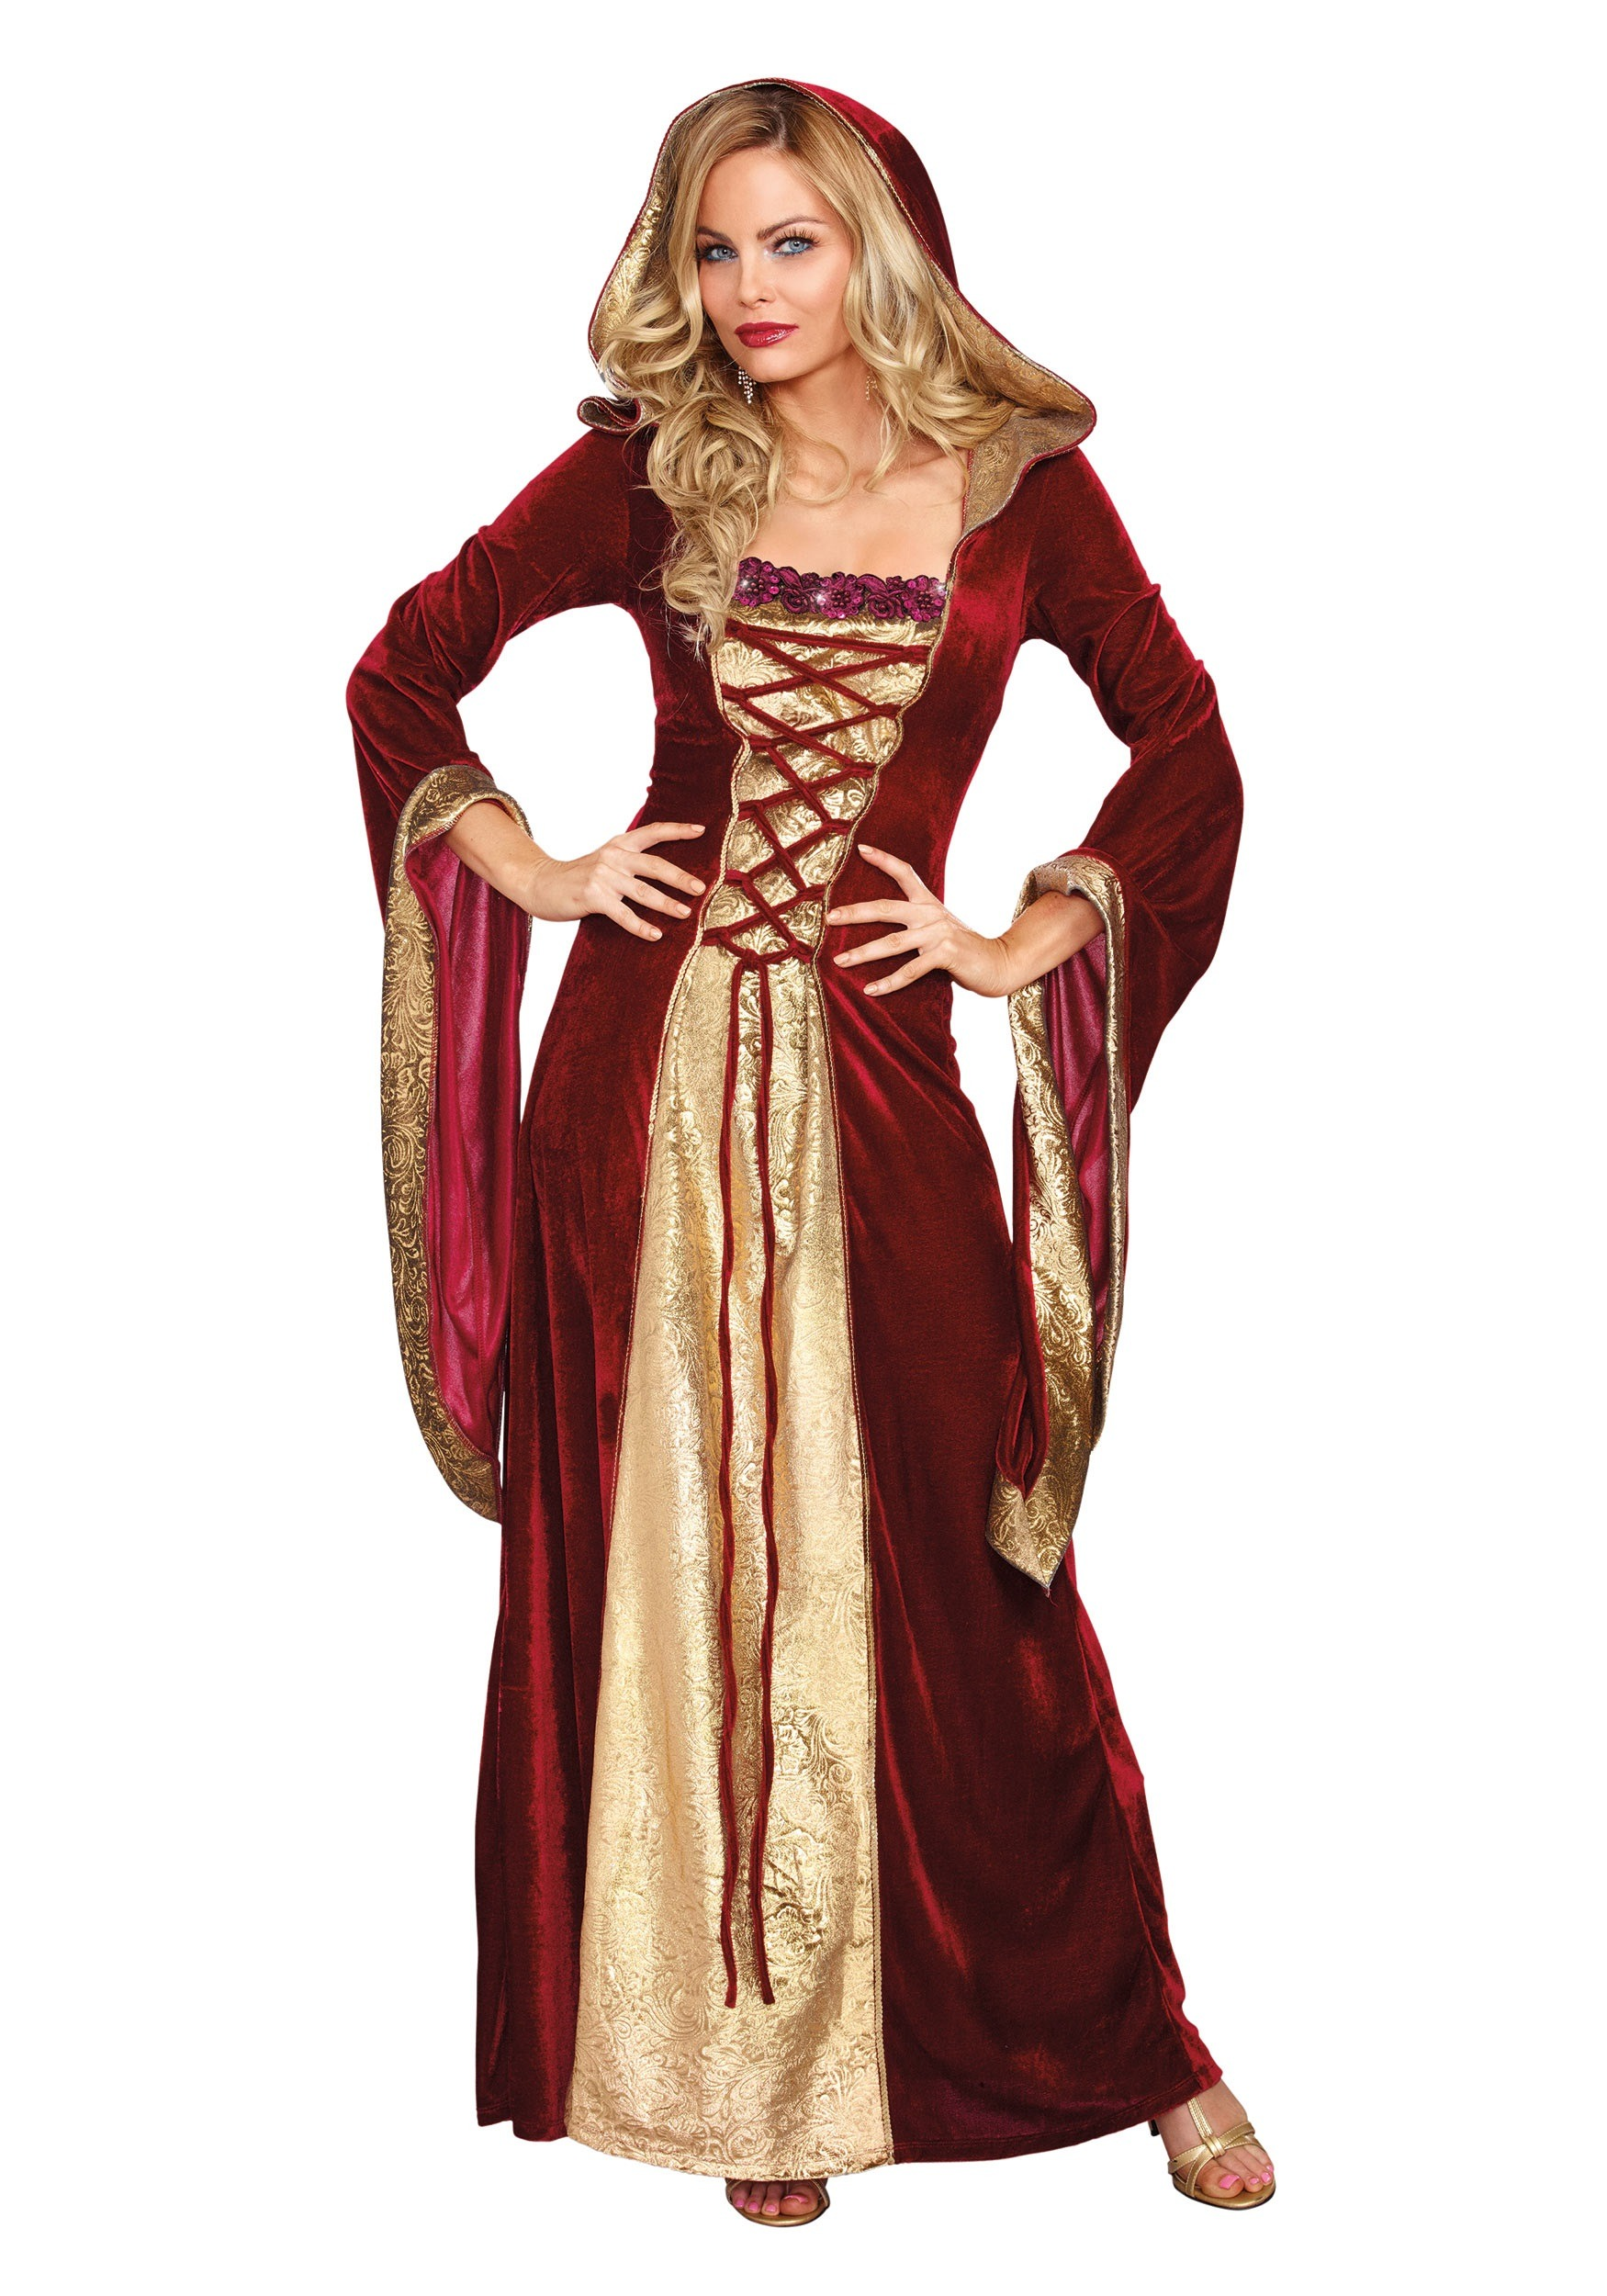 651792ff68e lady-of-the-thrones-womens-costume.jpg